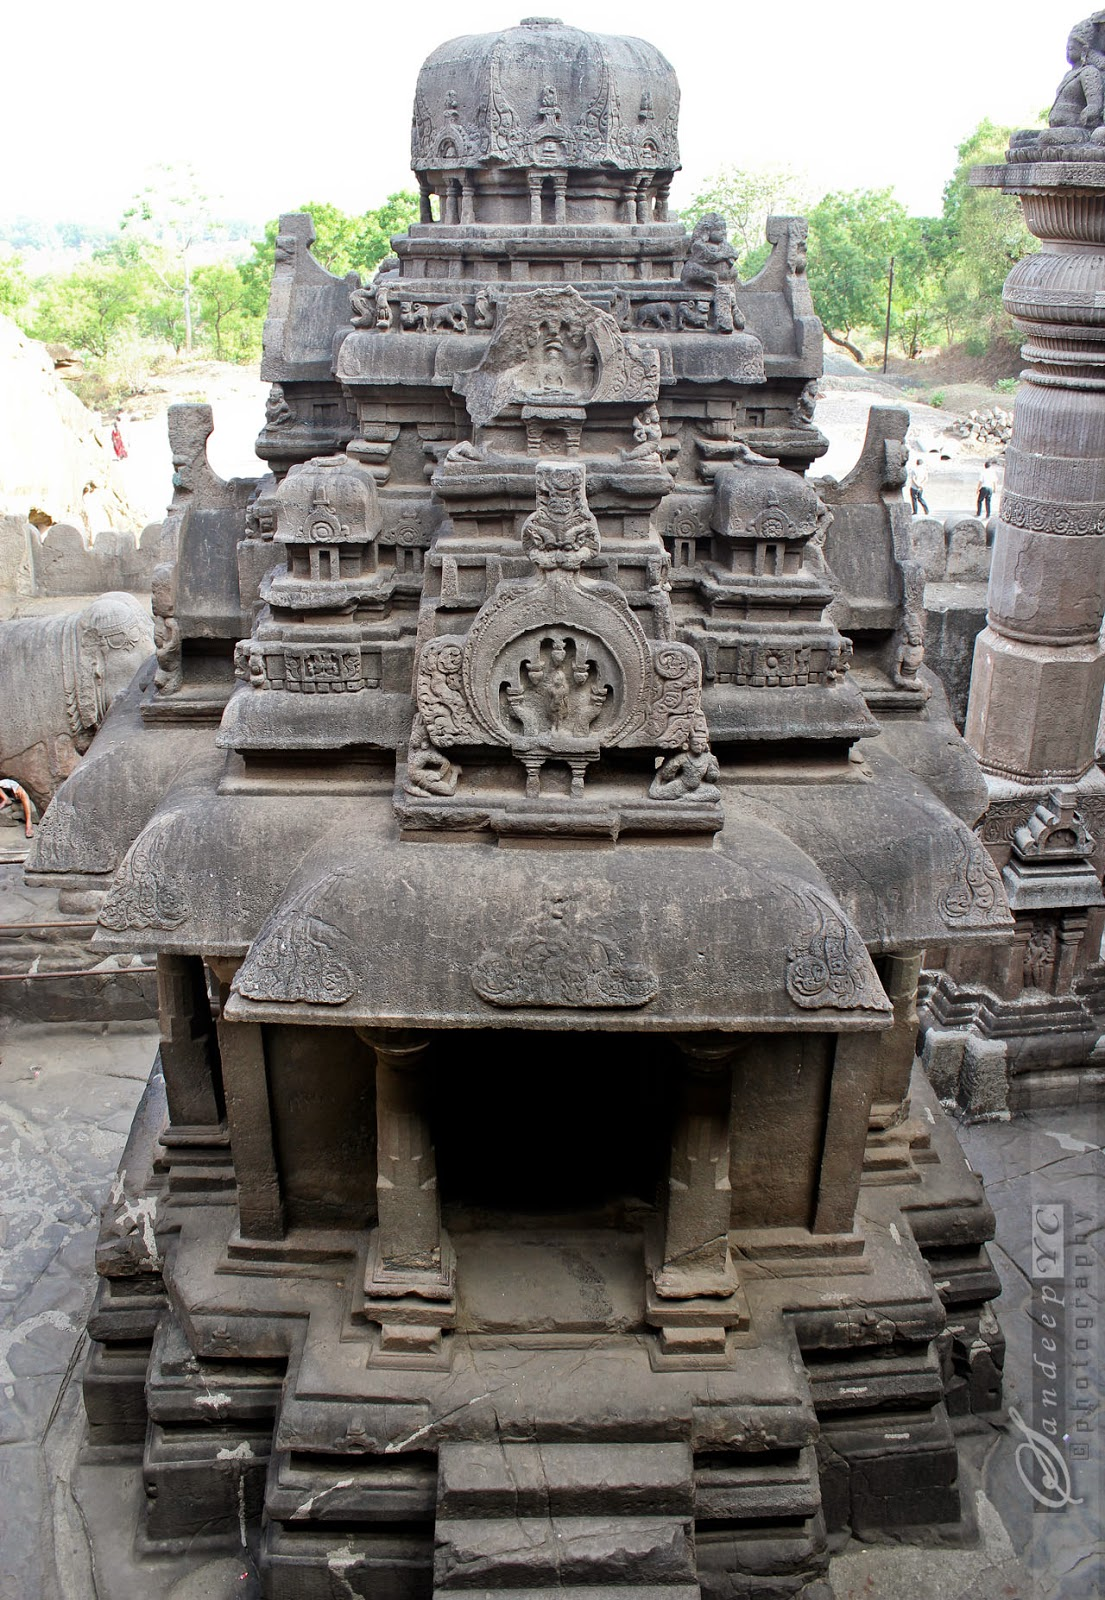 exquisitely carved monolithic shrine at the center of the courtyard